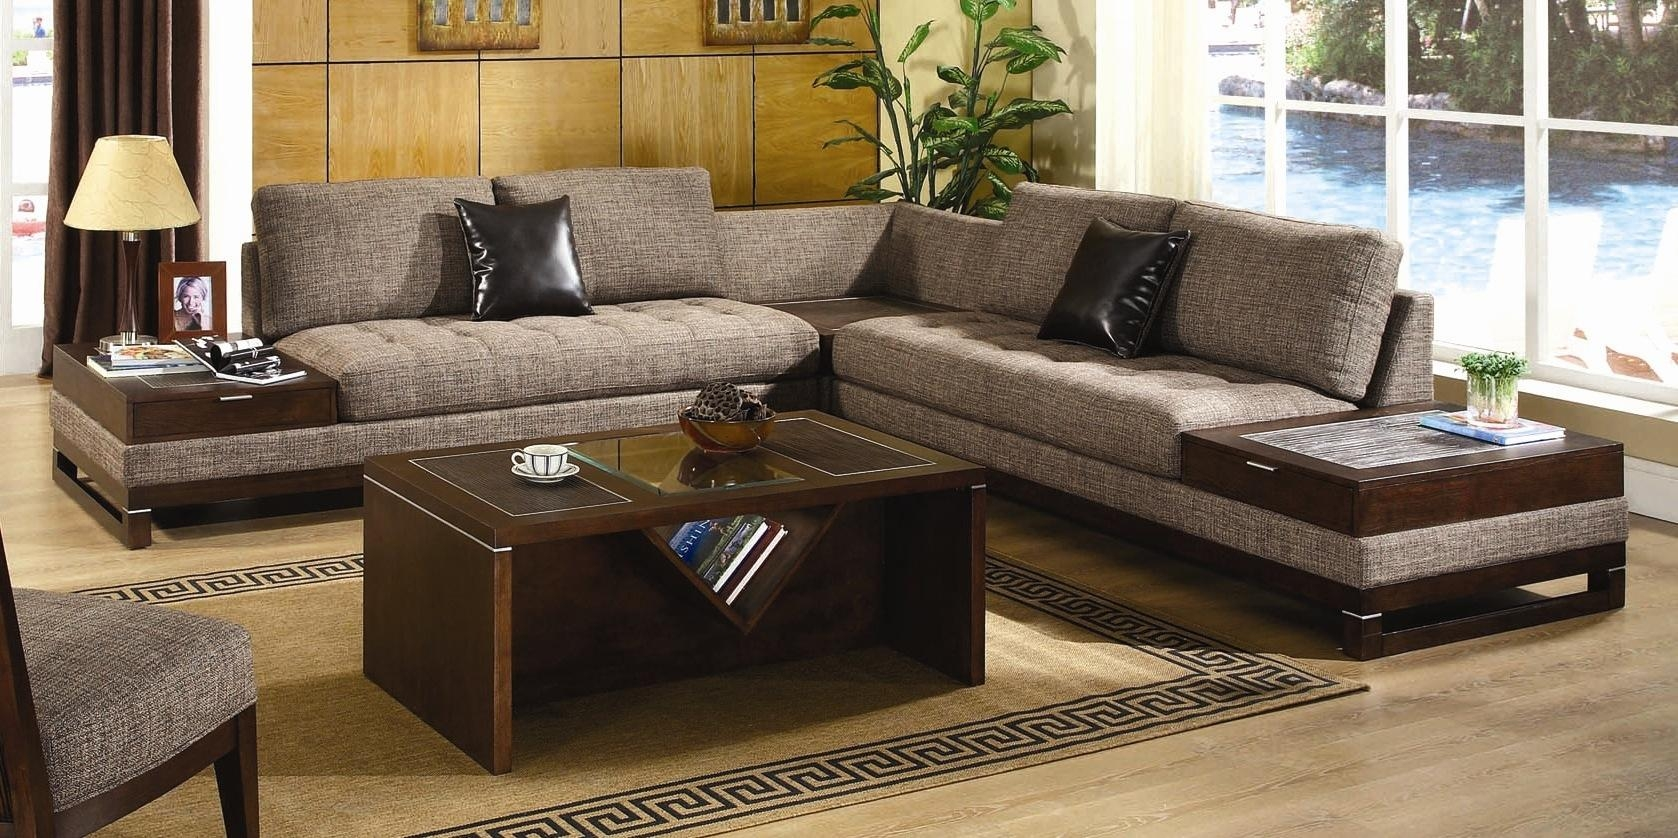 Sofa Furniture Discount Intended For Warm – Artdreamshome Regarding Cheap Sofa Chairs (View 17 of 20)